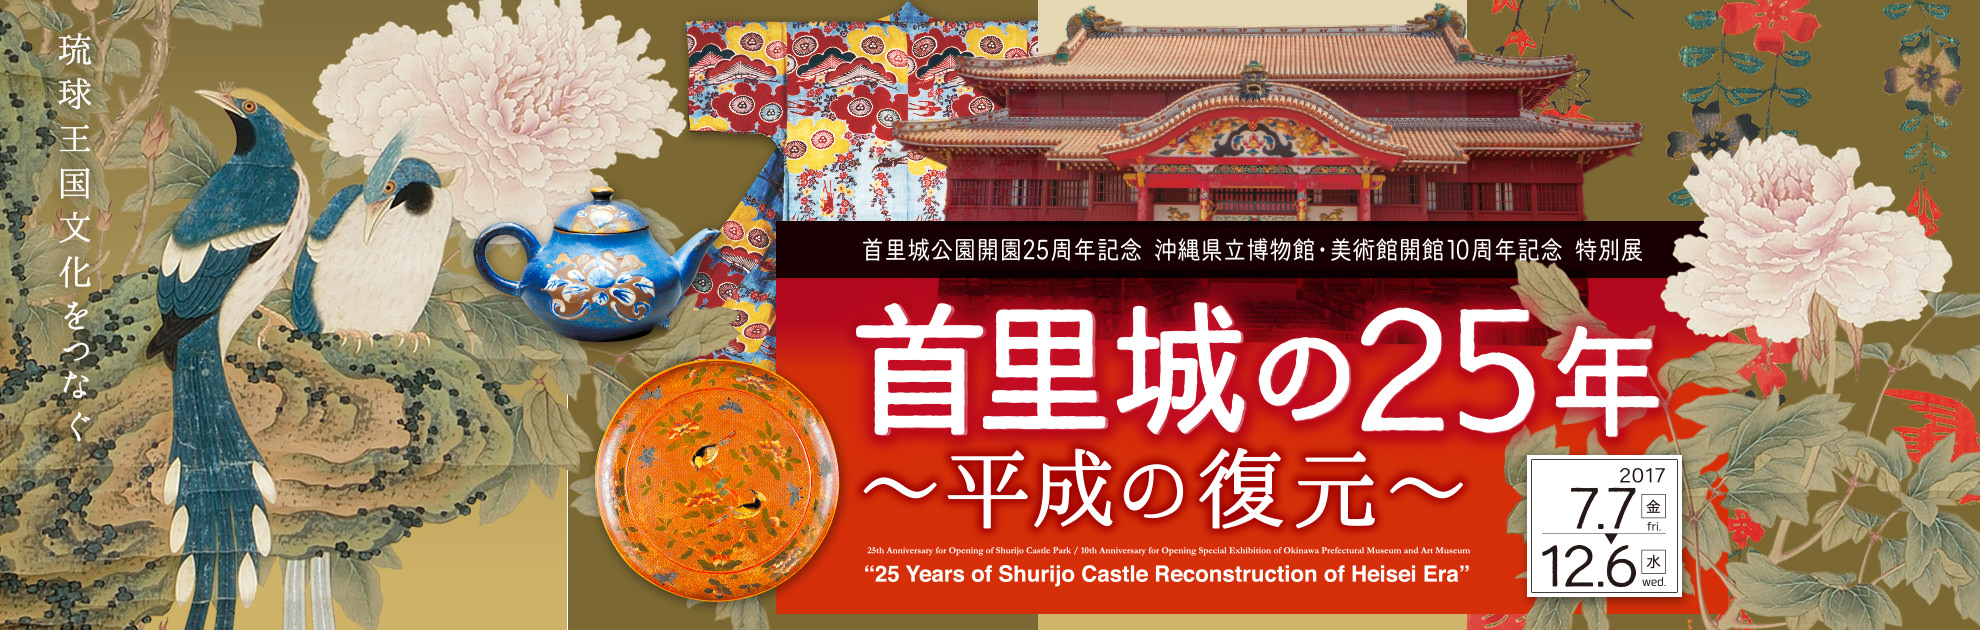 Reconstruction ... of 25 years - Heisei of temporary exhibition Shurijo Castle of the tenth anniversary of the Okinawa Prefectural Museum & Art Museum opening of the 25th anniversary of the Shurijo Castle Park opening of the park